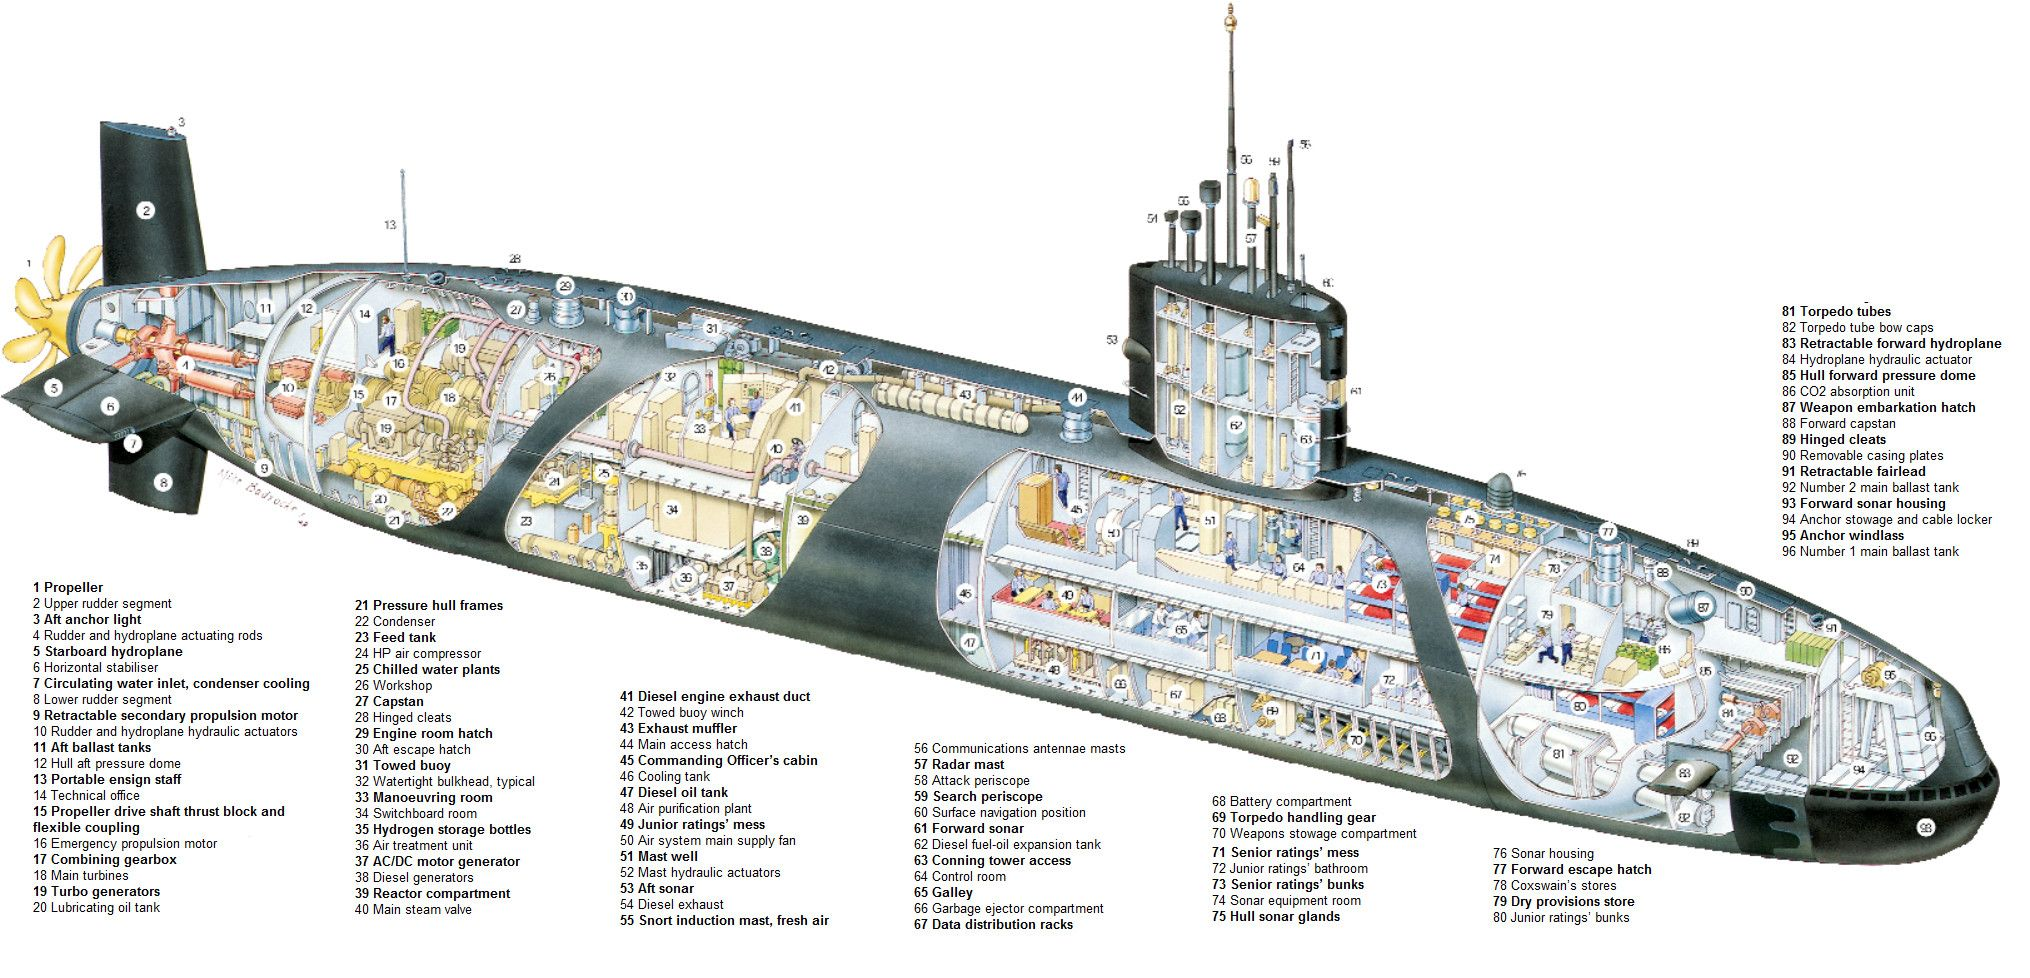 Nuclear Submarine Diagram Schematics Wiring Diagrams Power Plant With Image Result For Kilo Class Drawings Sub Cutaways Rh Pinterest Com